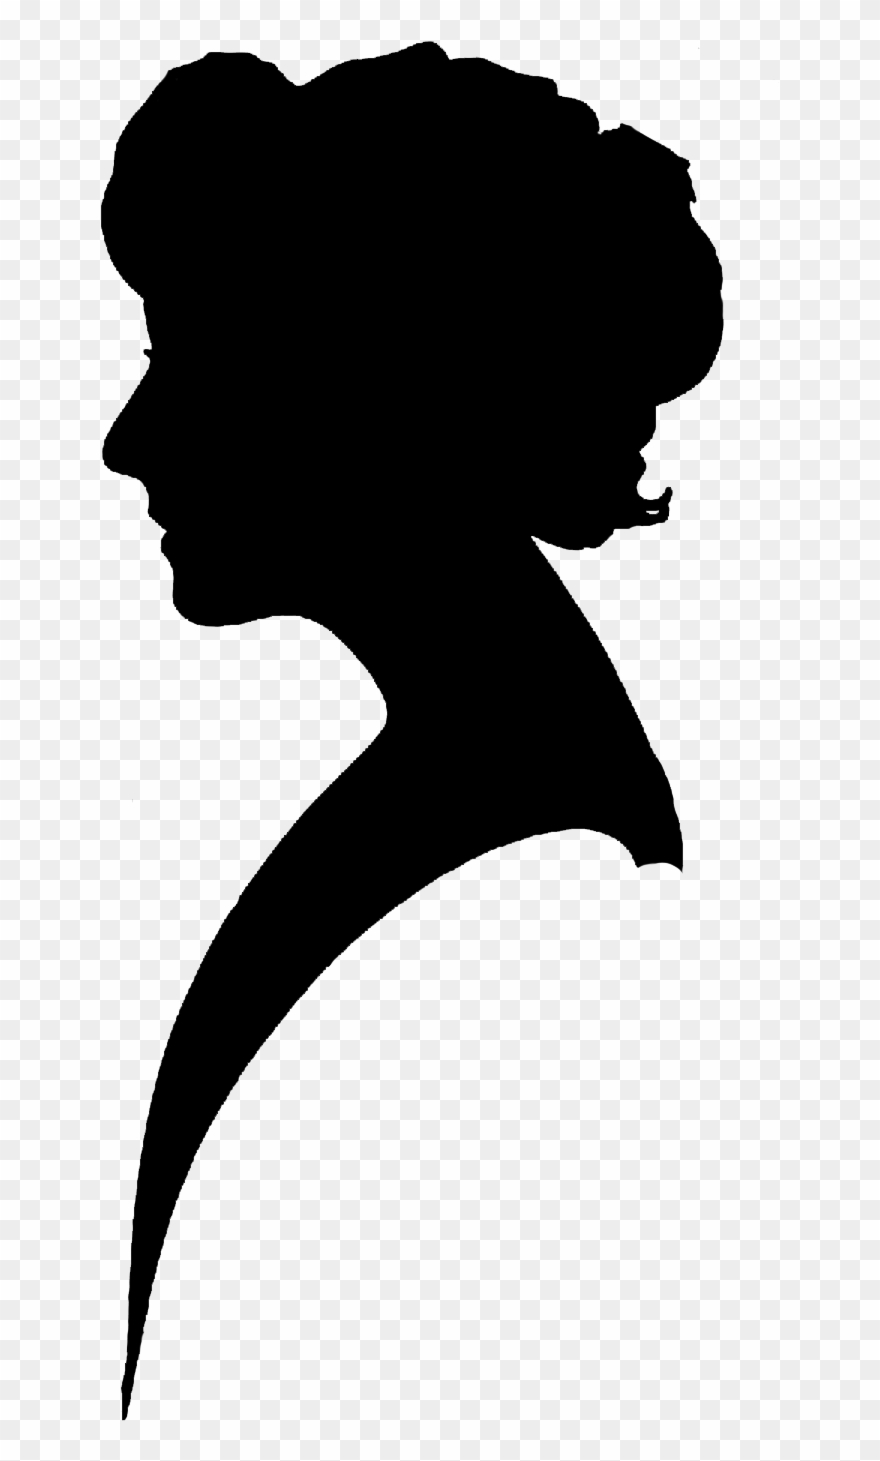 Free silhouette clipart images